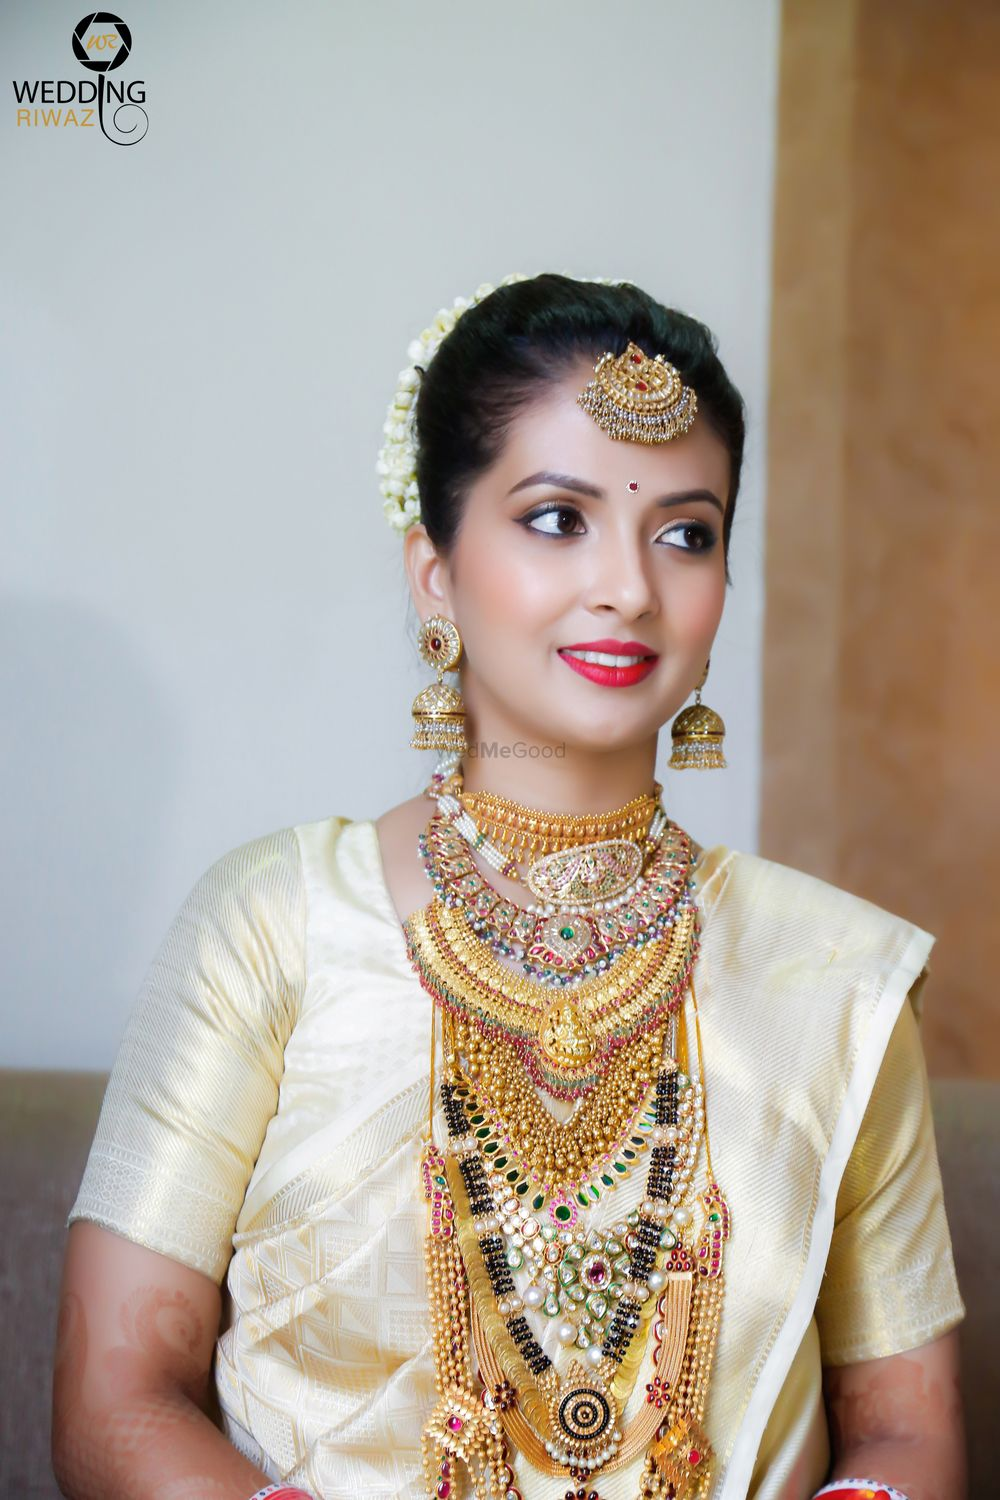 Photo of South Indian bride with multiple layered necklaces